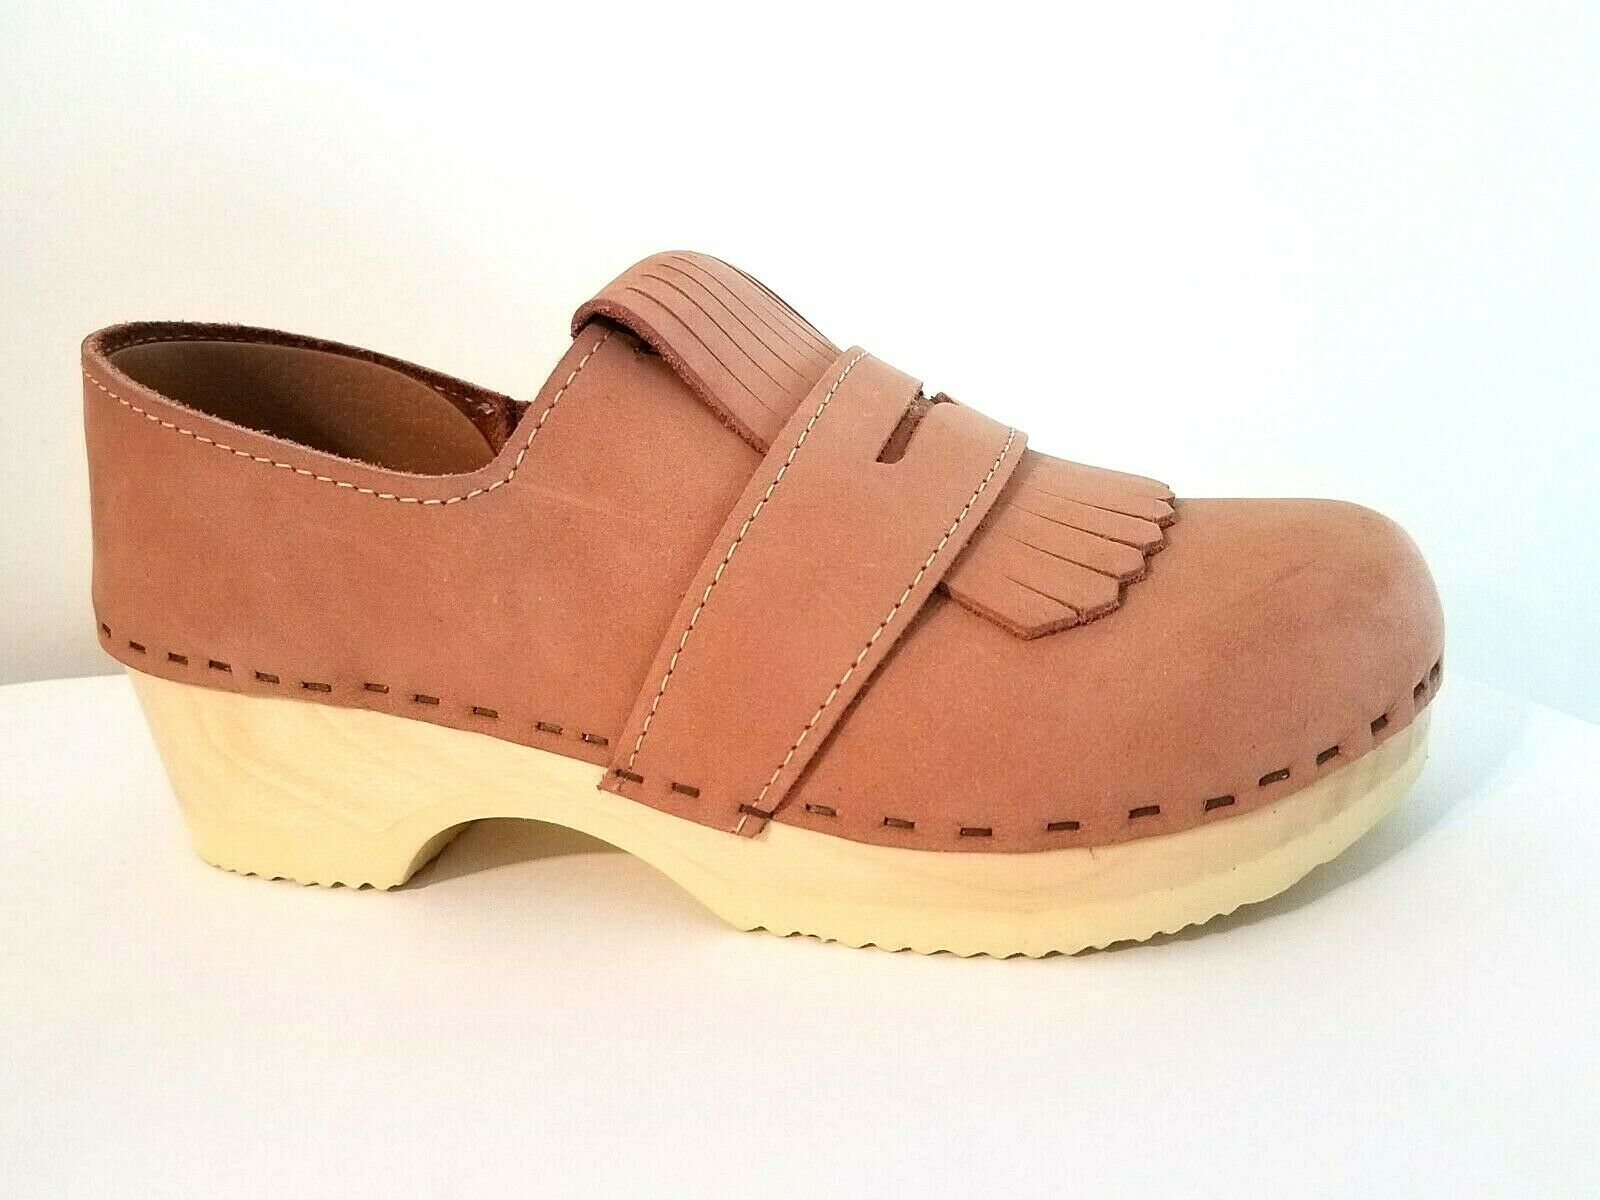 New SVEN Kiltie pink Nubuck Sueded Leather Closed Back Clogs 6 36 by No. 6